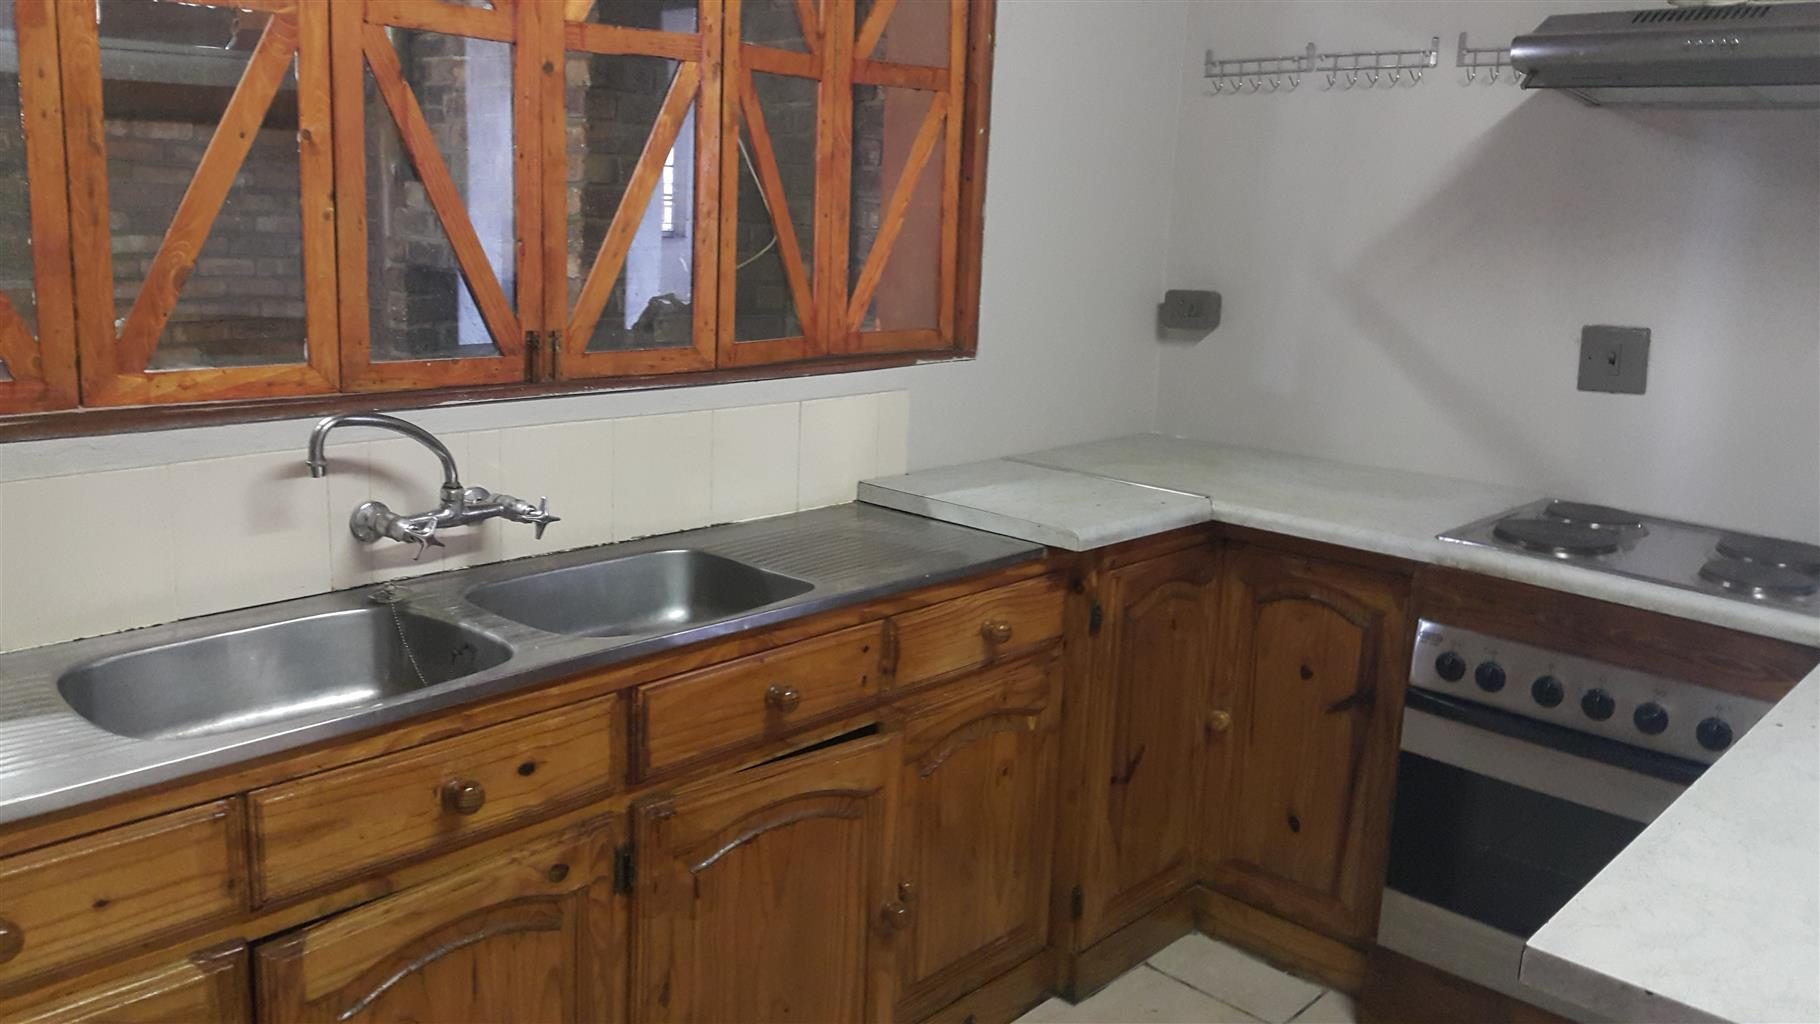 3 BEDROOM HOUSE WITH BIG FLAT WITH OWN ENTRANCE(CAN BE USED FOR BUSSINESS)